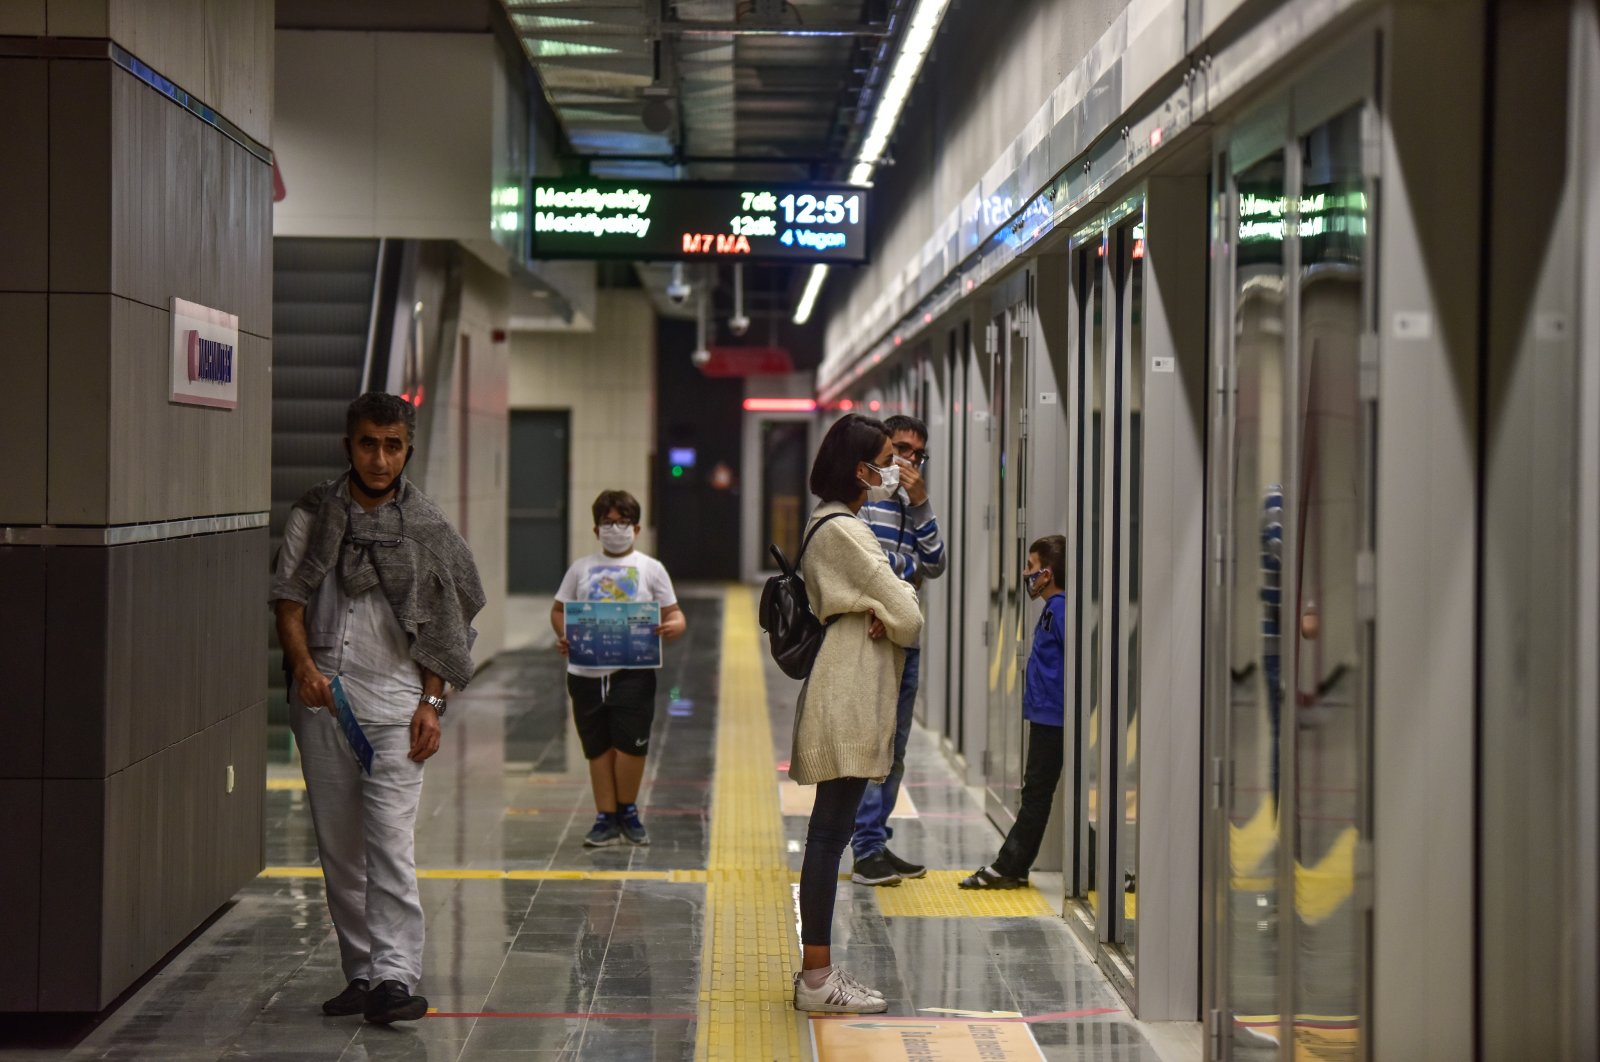 Passengers walk in a station of Mecidiyeköy-Mahmutbey metro line, Oct. 28, 2020. (DHA Photo)